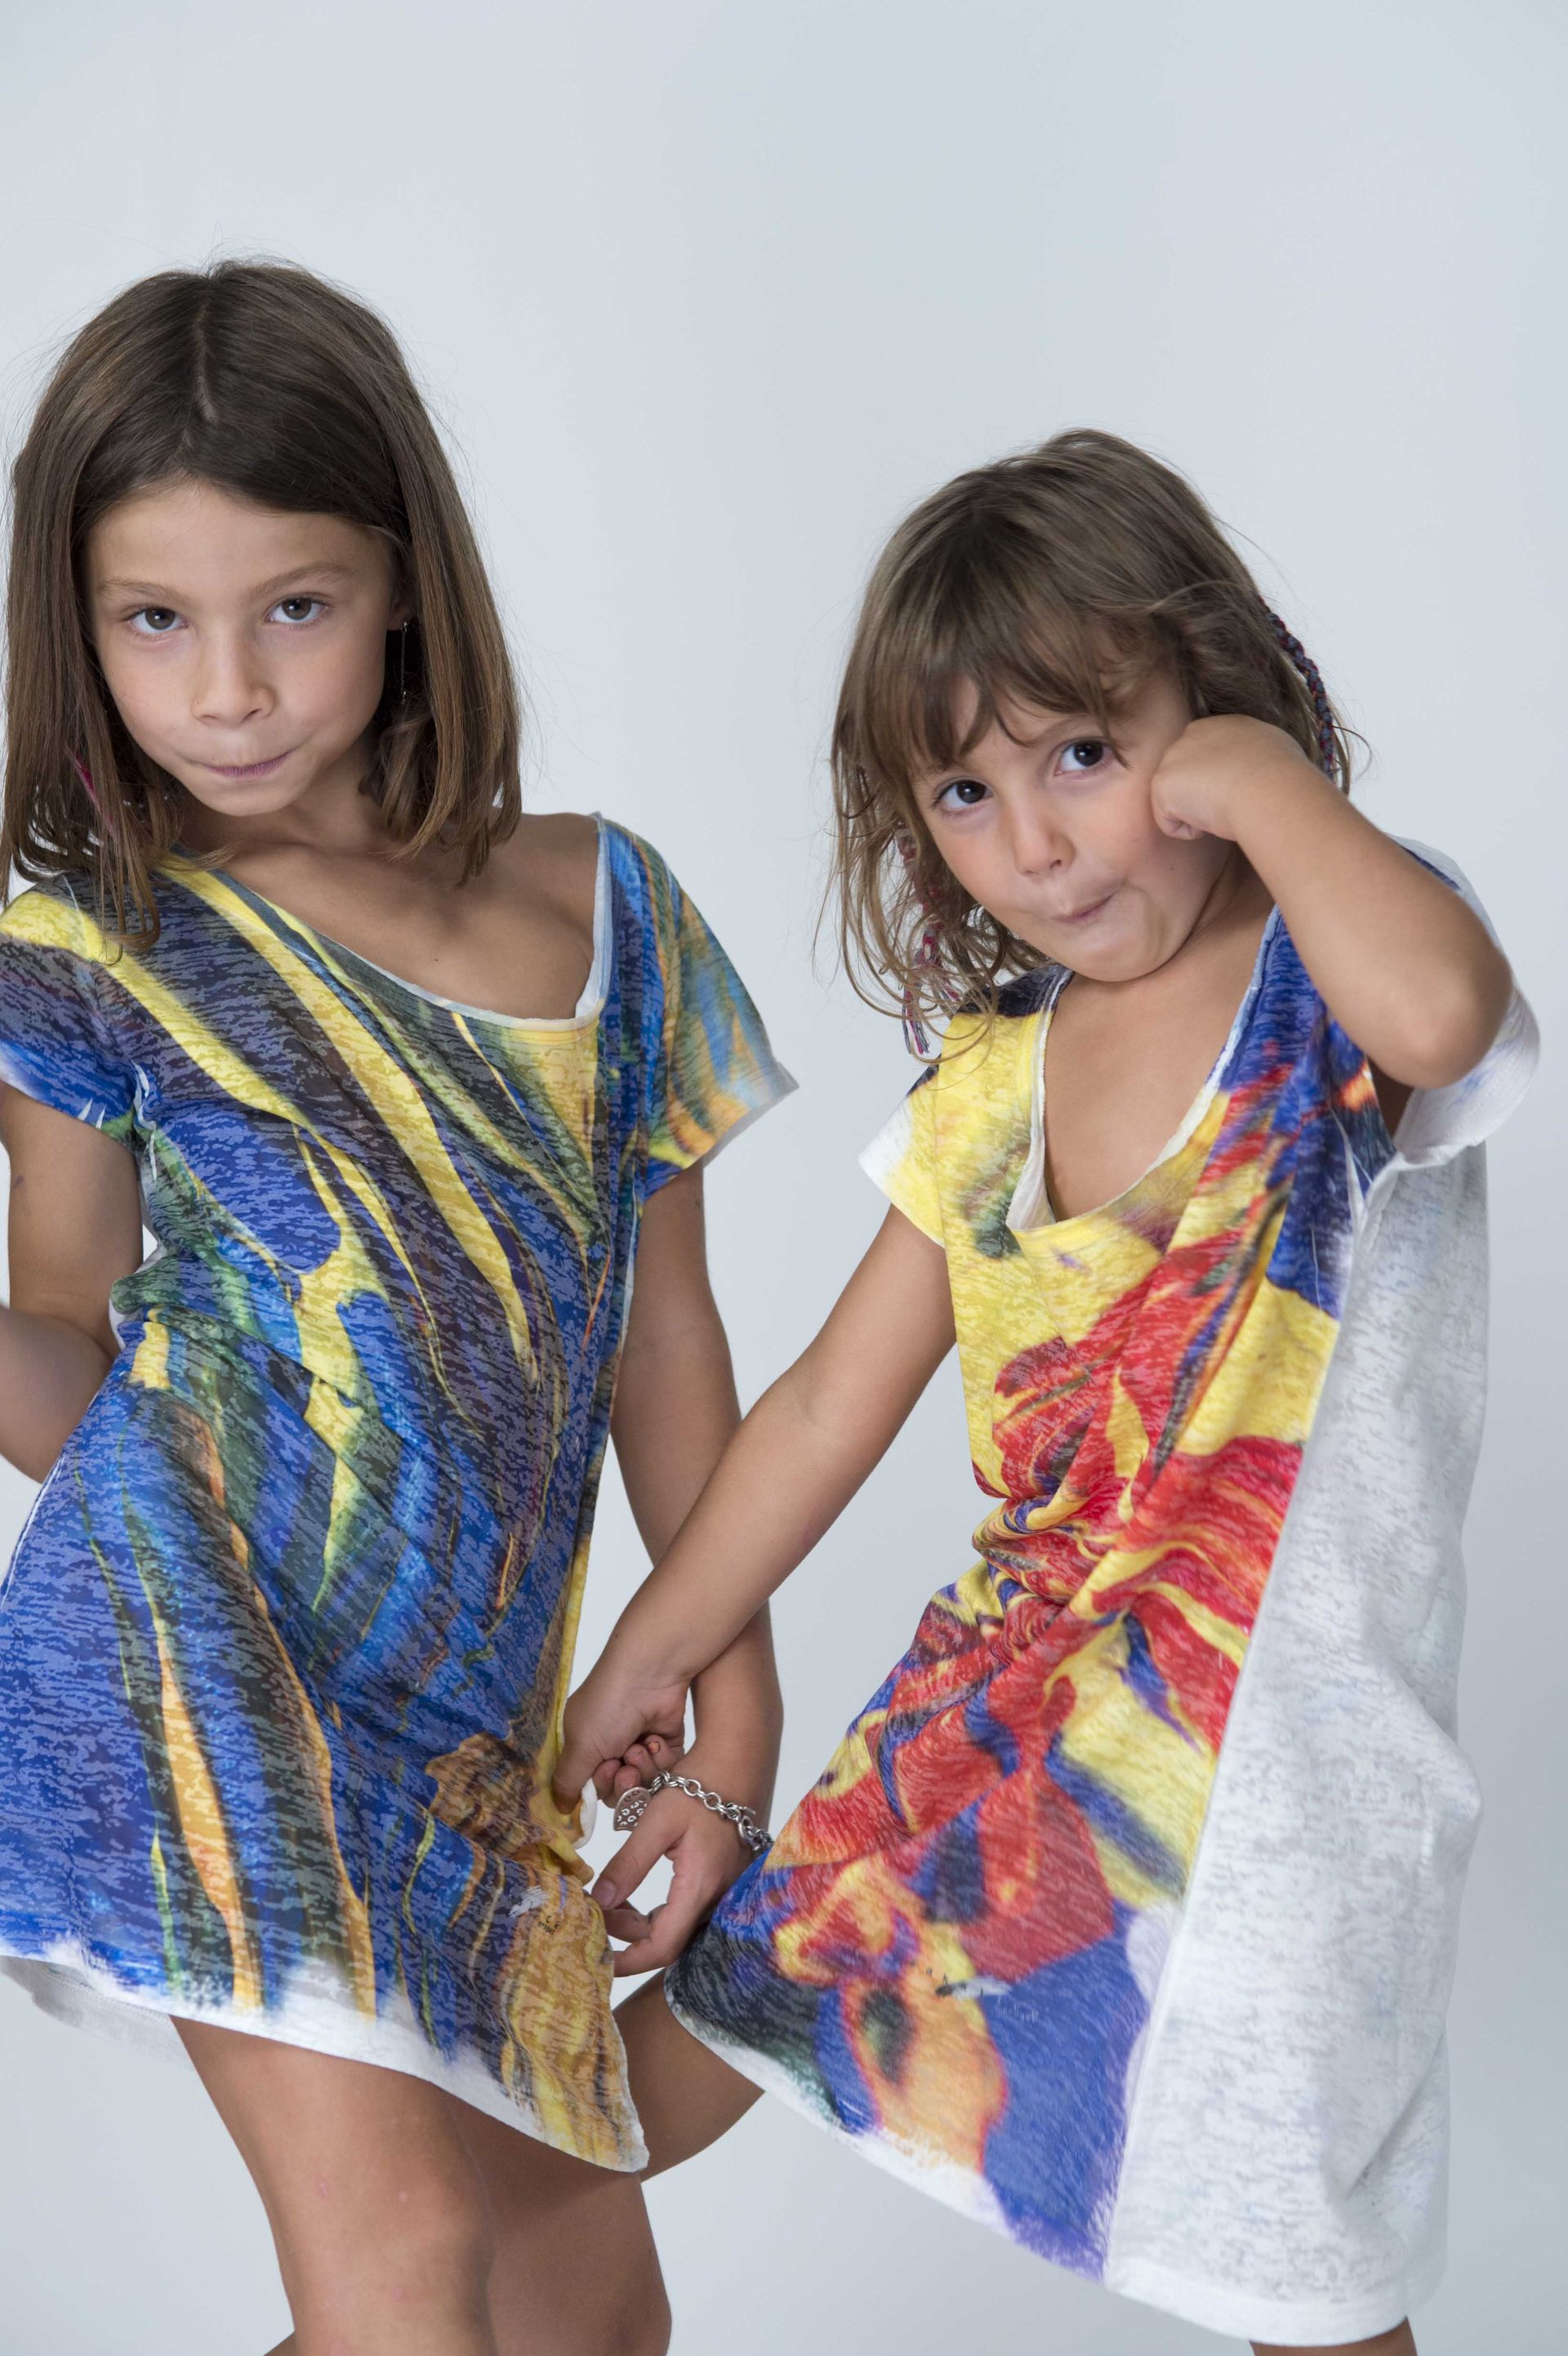 ZakSlice, when art becomes fashion - It comes from Siena the artistic duo that will allow you to wear amazing paintings - kids with ZakSliceproget t-shirt - not only twenty fashion blog #fashionover40